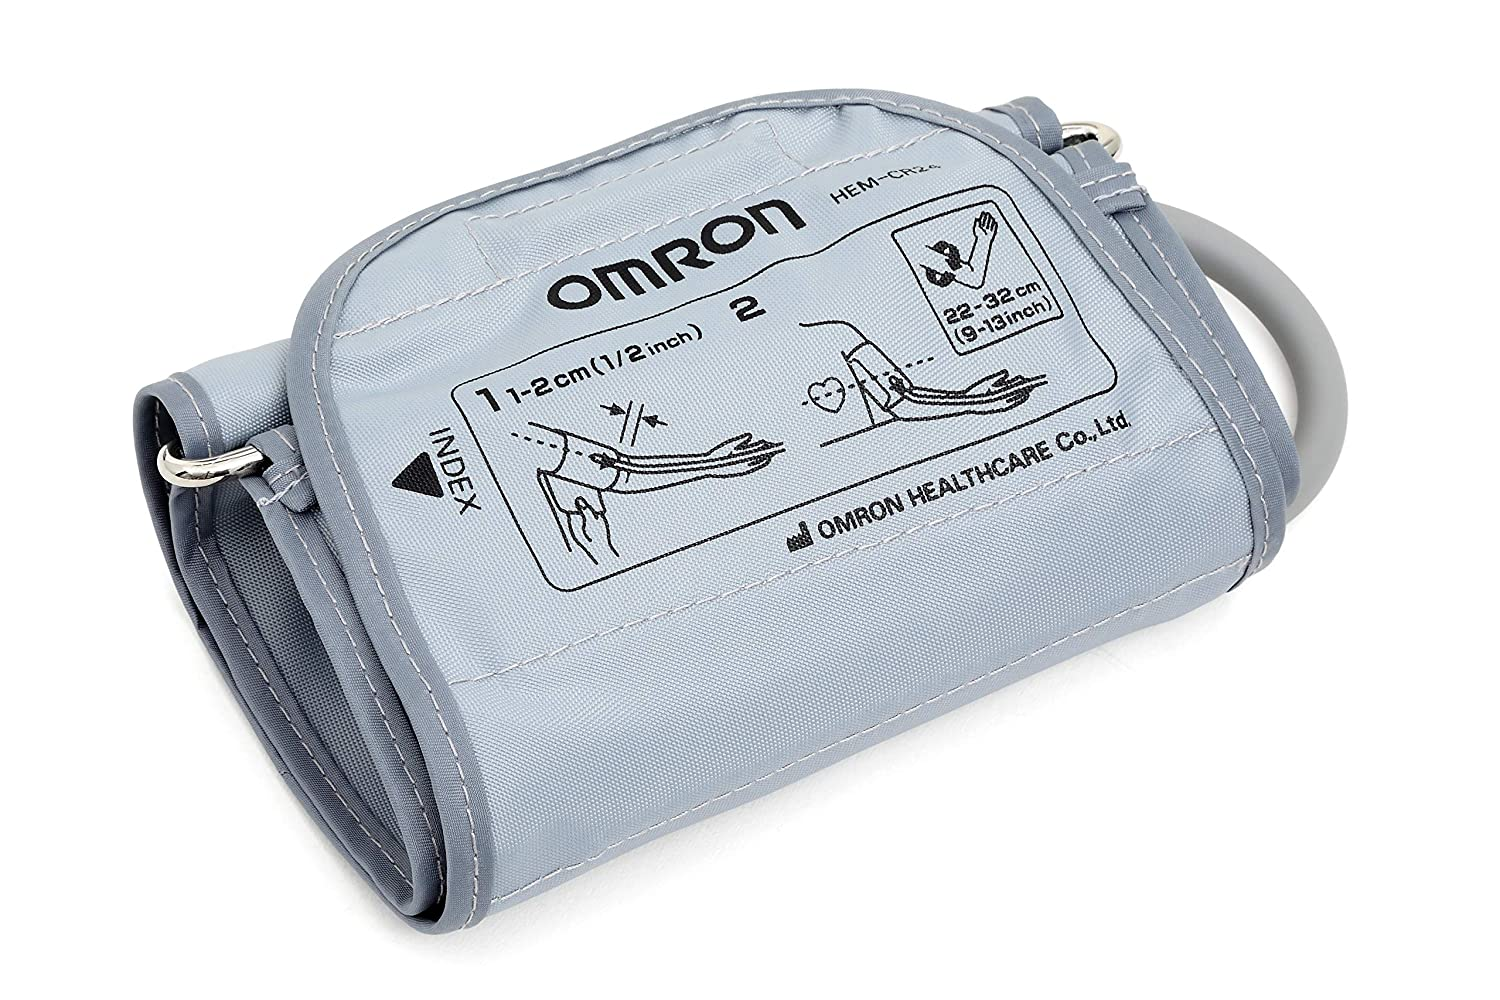 Amazon.com: Omron (cm 2) Medium Blood Pressure Monitor Cuff (22-32 cm): Health & Personal Care